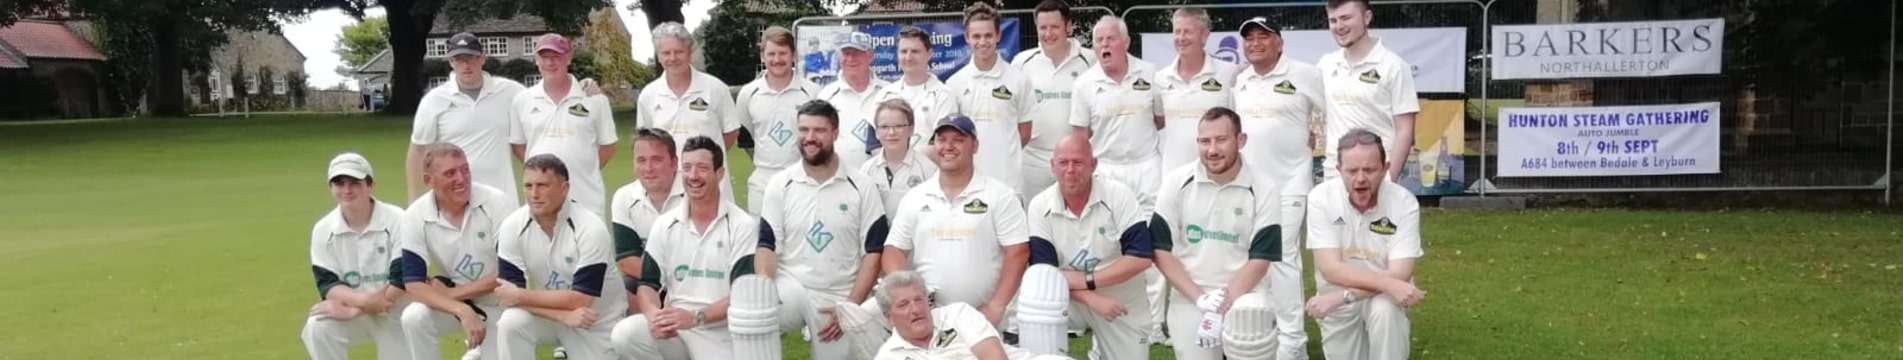 Emmerdale Charity Cricket Match